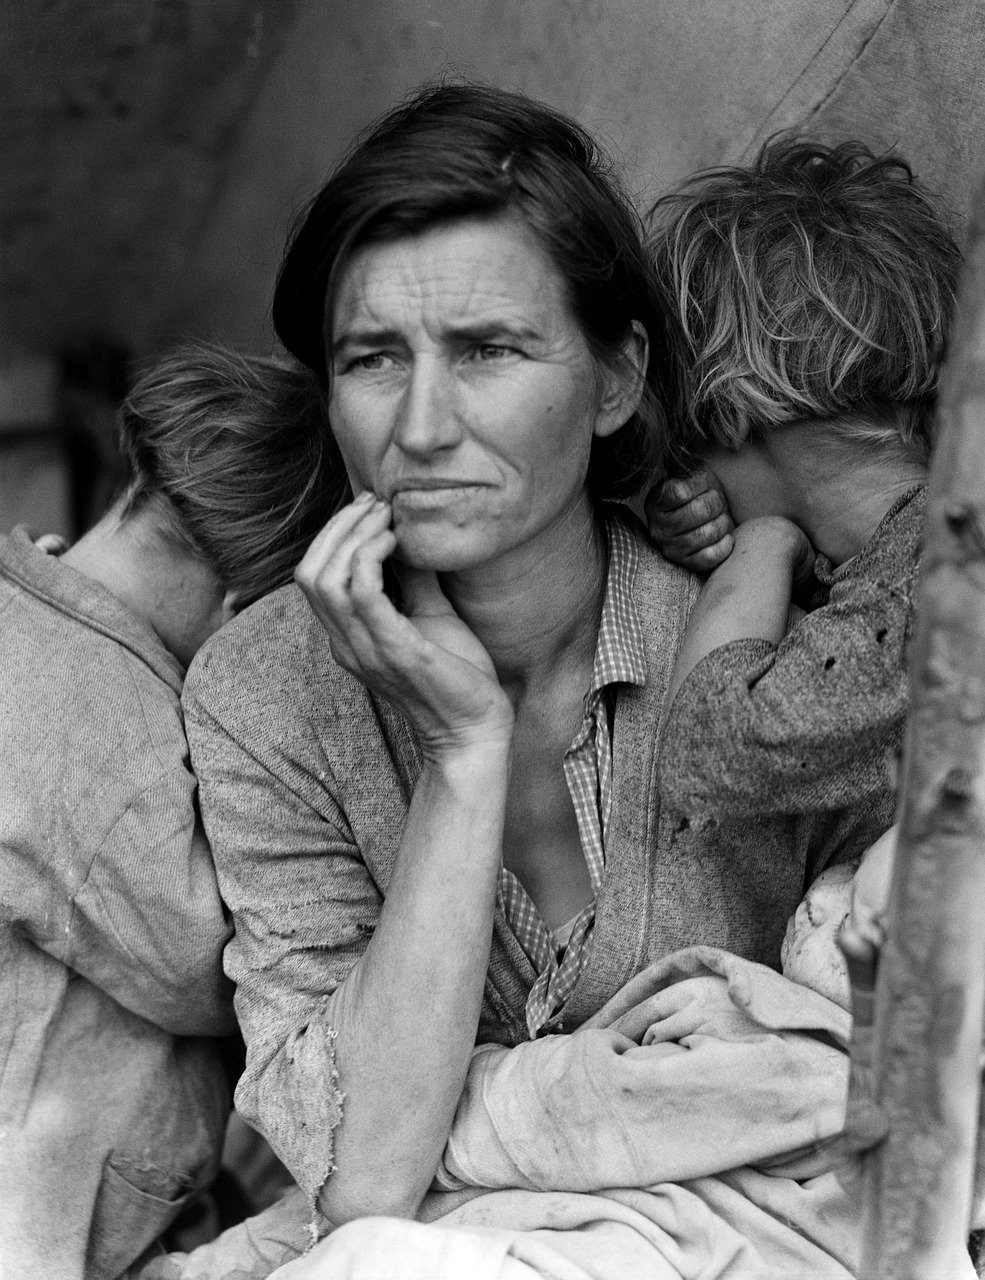 woman,children,florence thompson,portrait,black and white,migrant mother,great depression,usa,free pictures, free photos, free images, royalty free, free illustrations, public domain